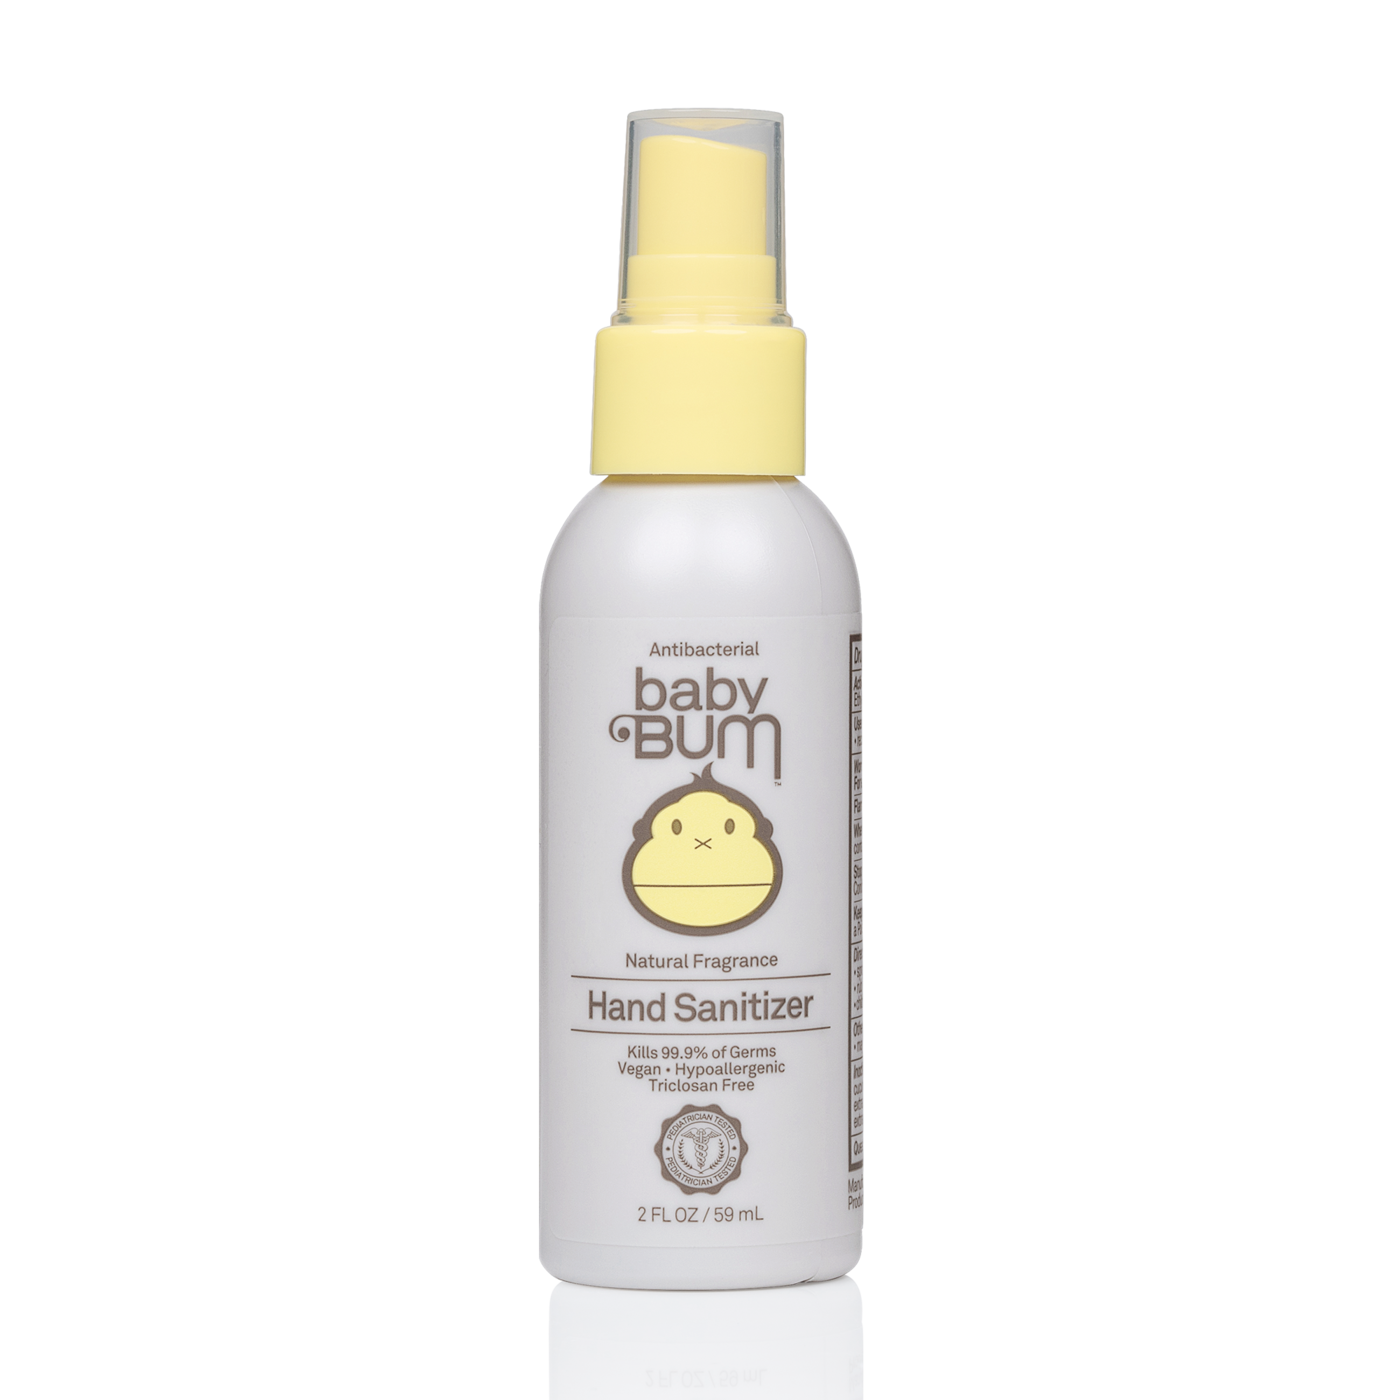 sun bum - baby bum I hand sanitizer[product_type ]sun bum - Kiss and Makeup